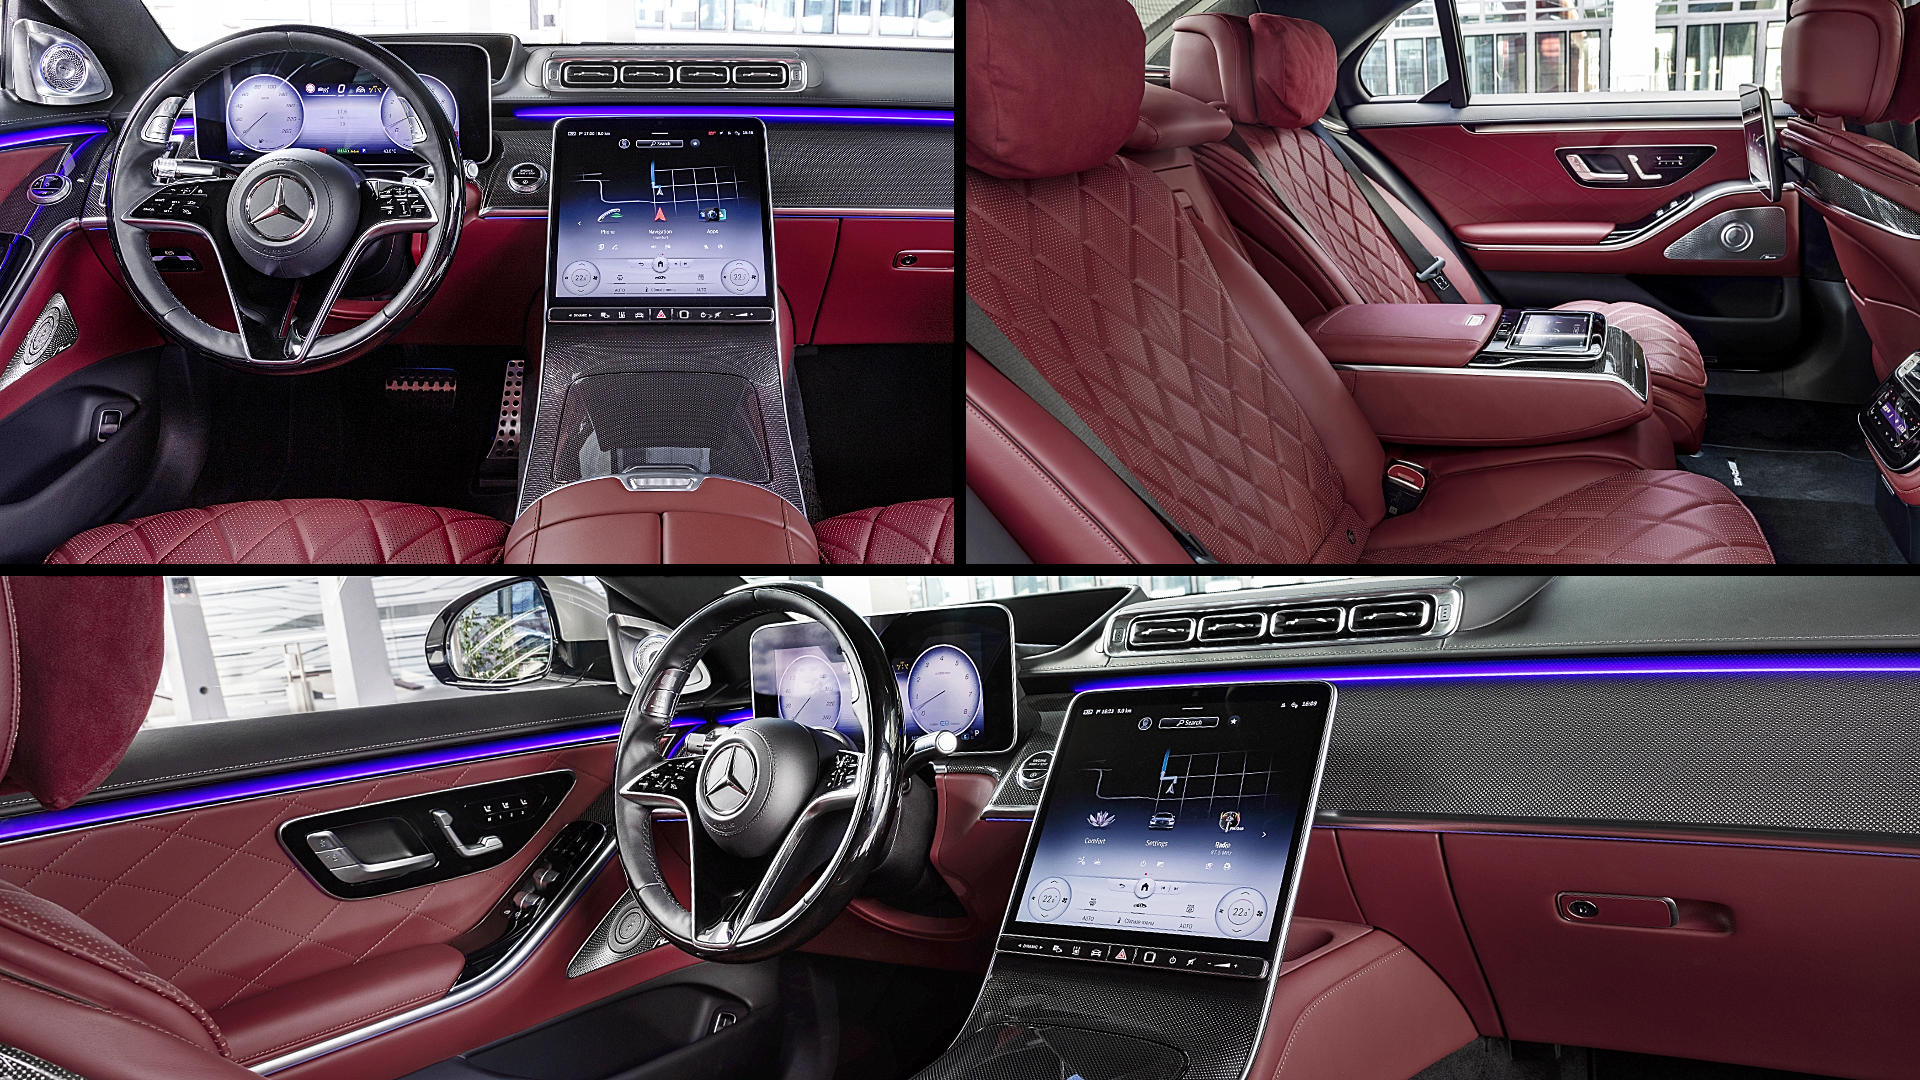 2021 Mercedes-Benz S-Class Red Interior Images